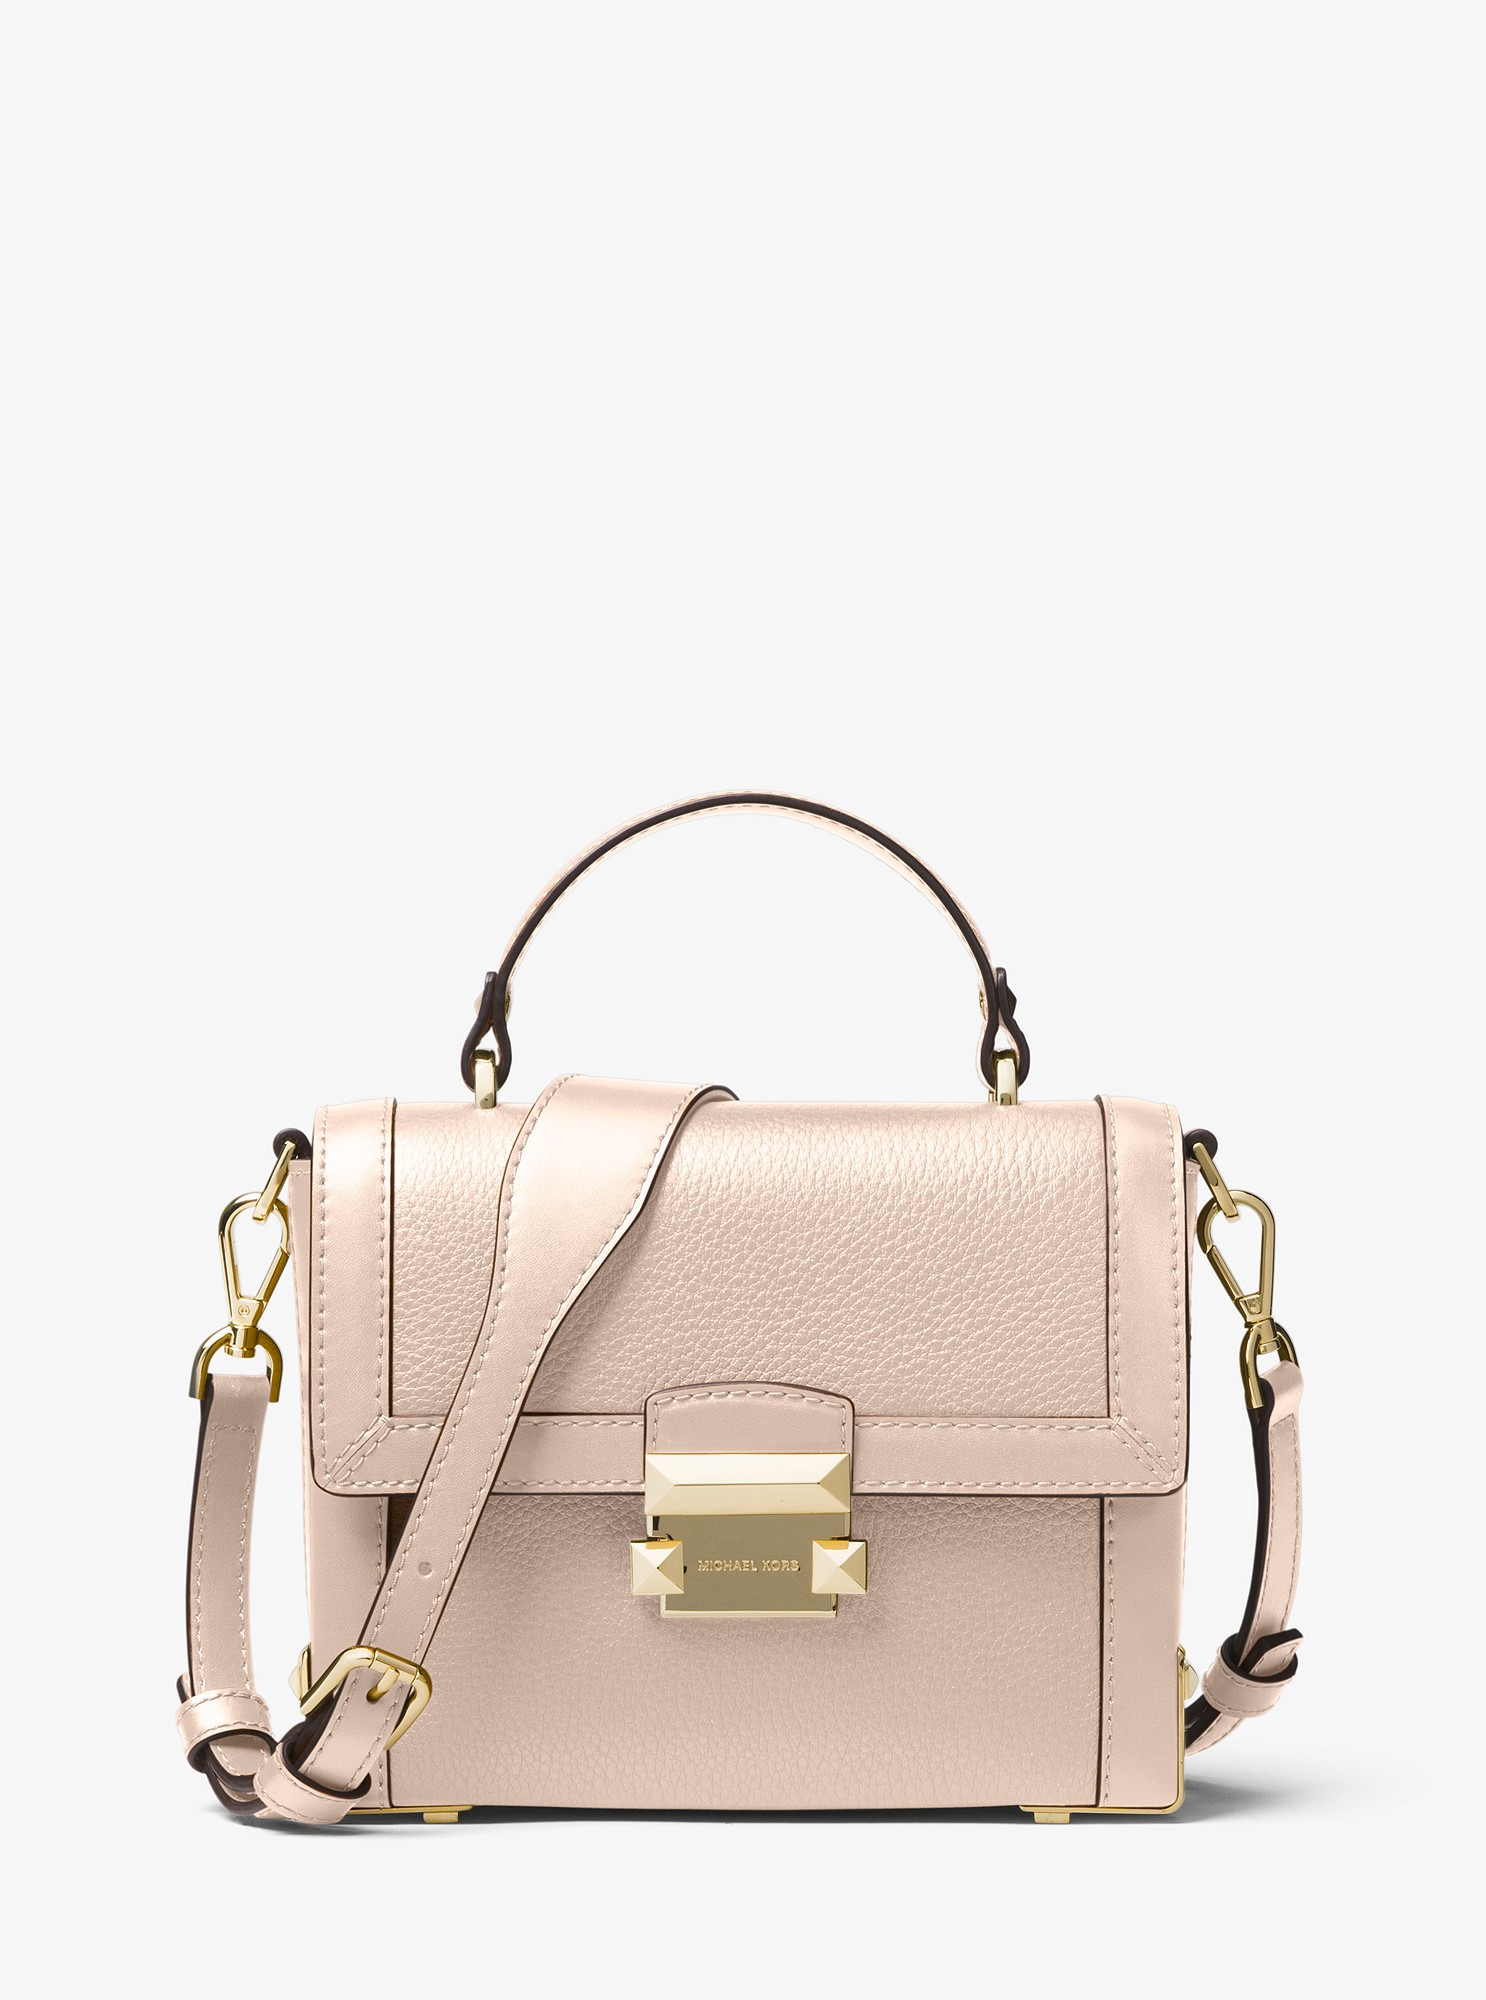 4d3ac7b856f Michael Kors Jayne Small Pebbled Leather Trunk Bag - Soft Pink ...